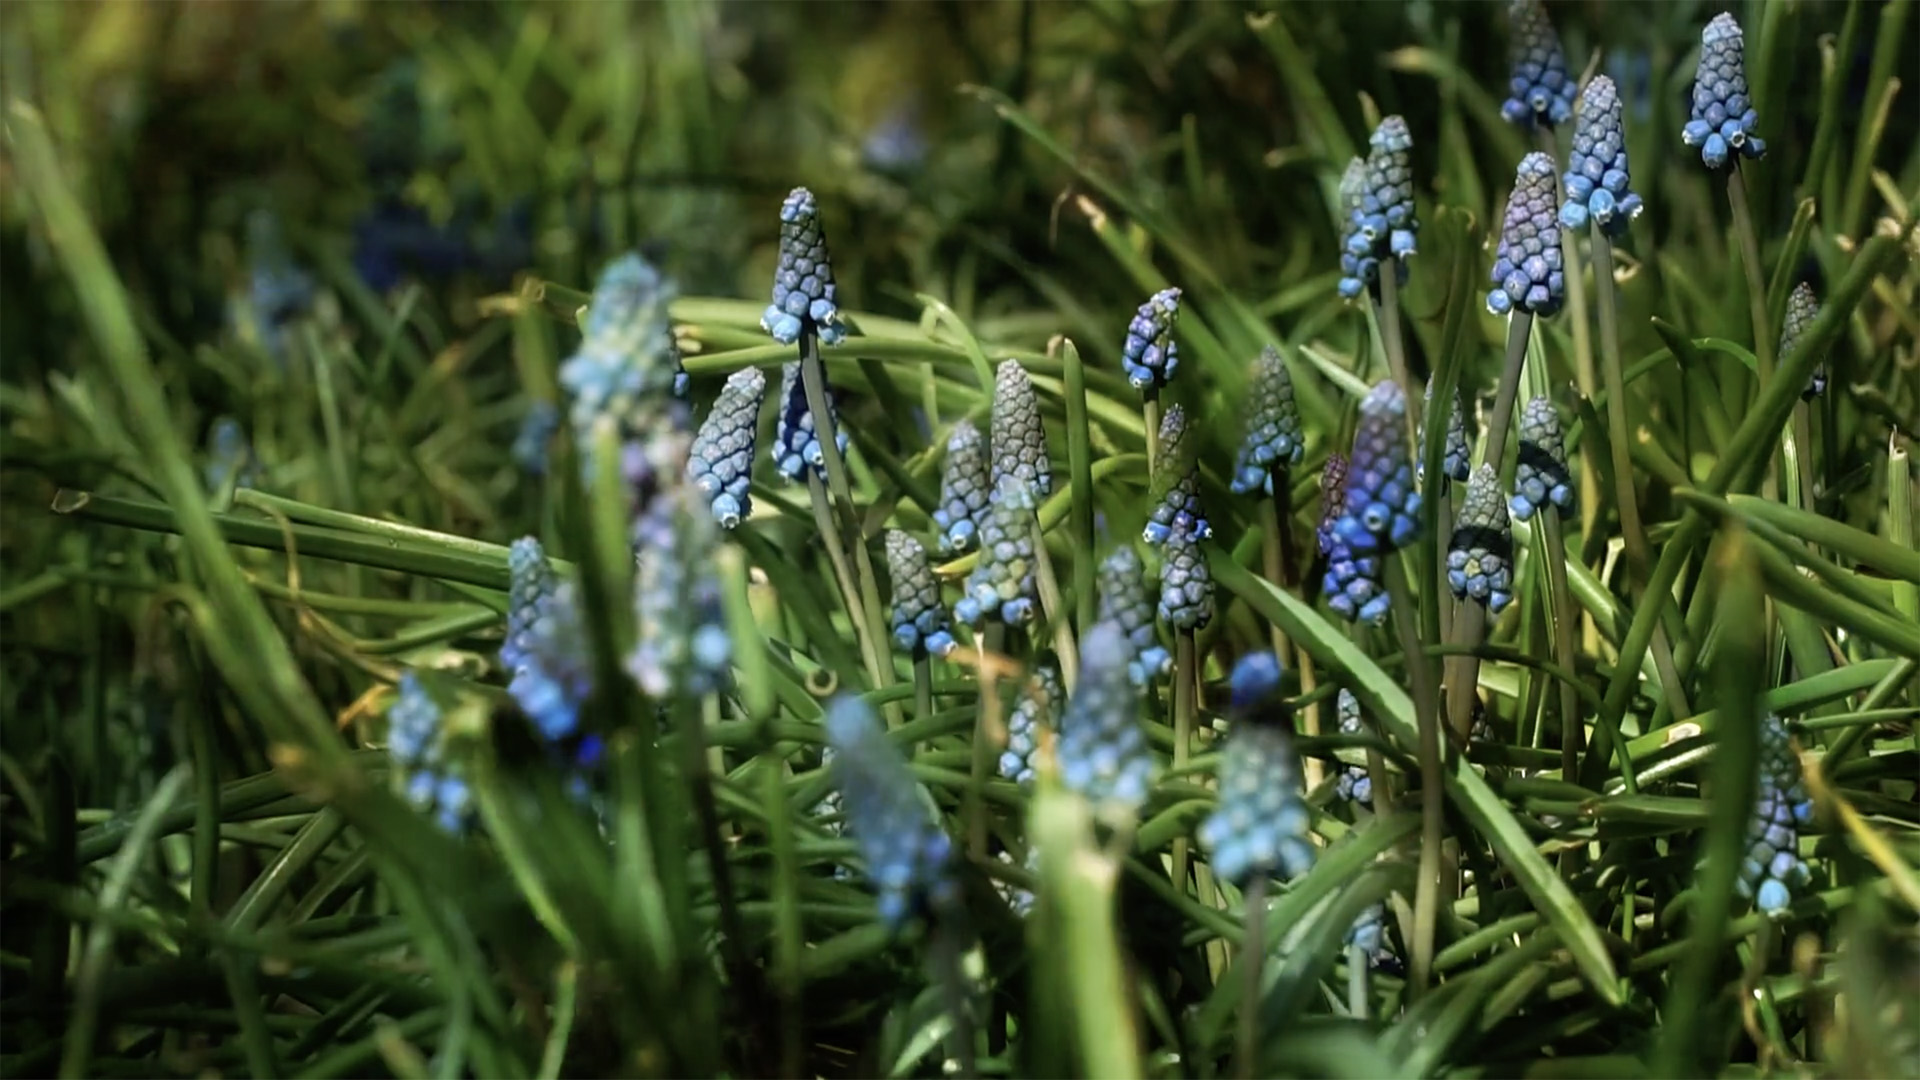 Blue flowers emerge from green foliage